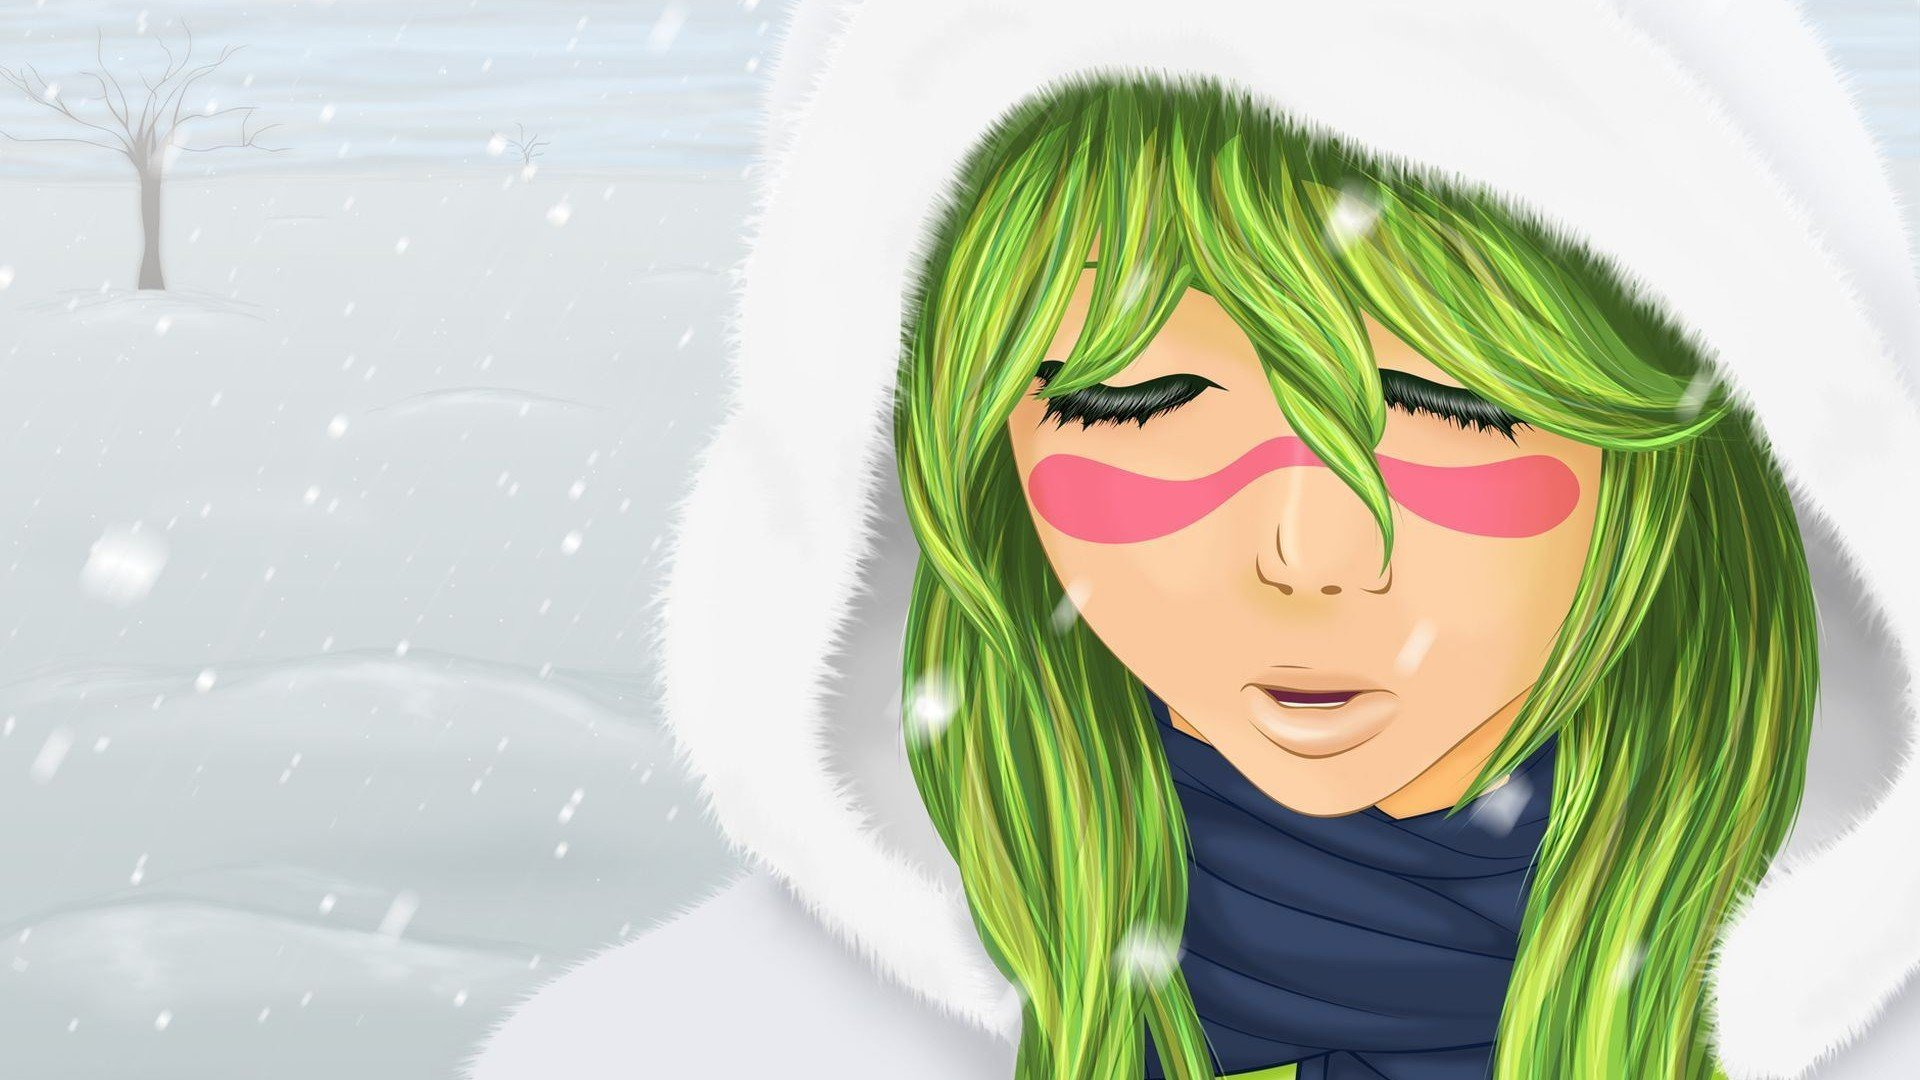 Anime Characters With Green Hair : Anime series bleach girl green hair character wallpaper